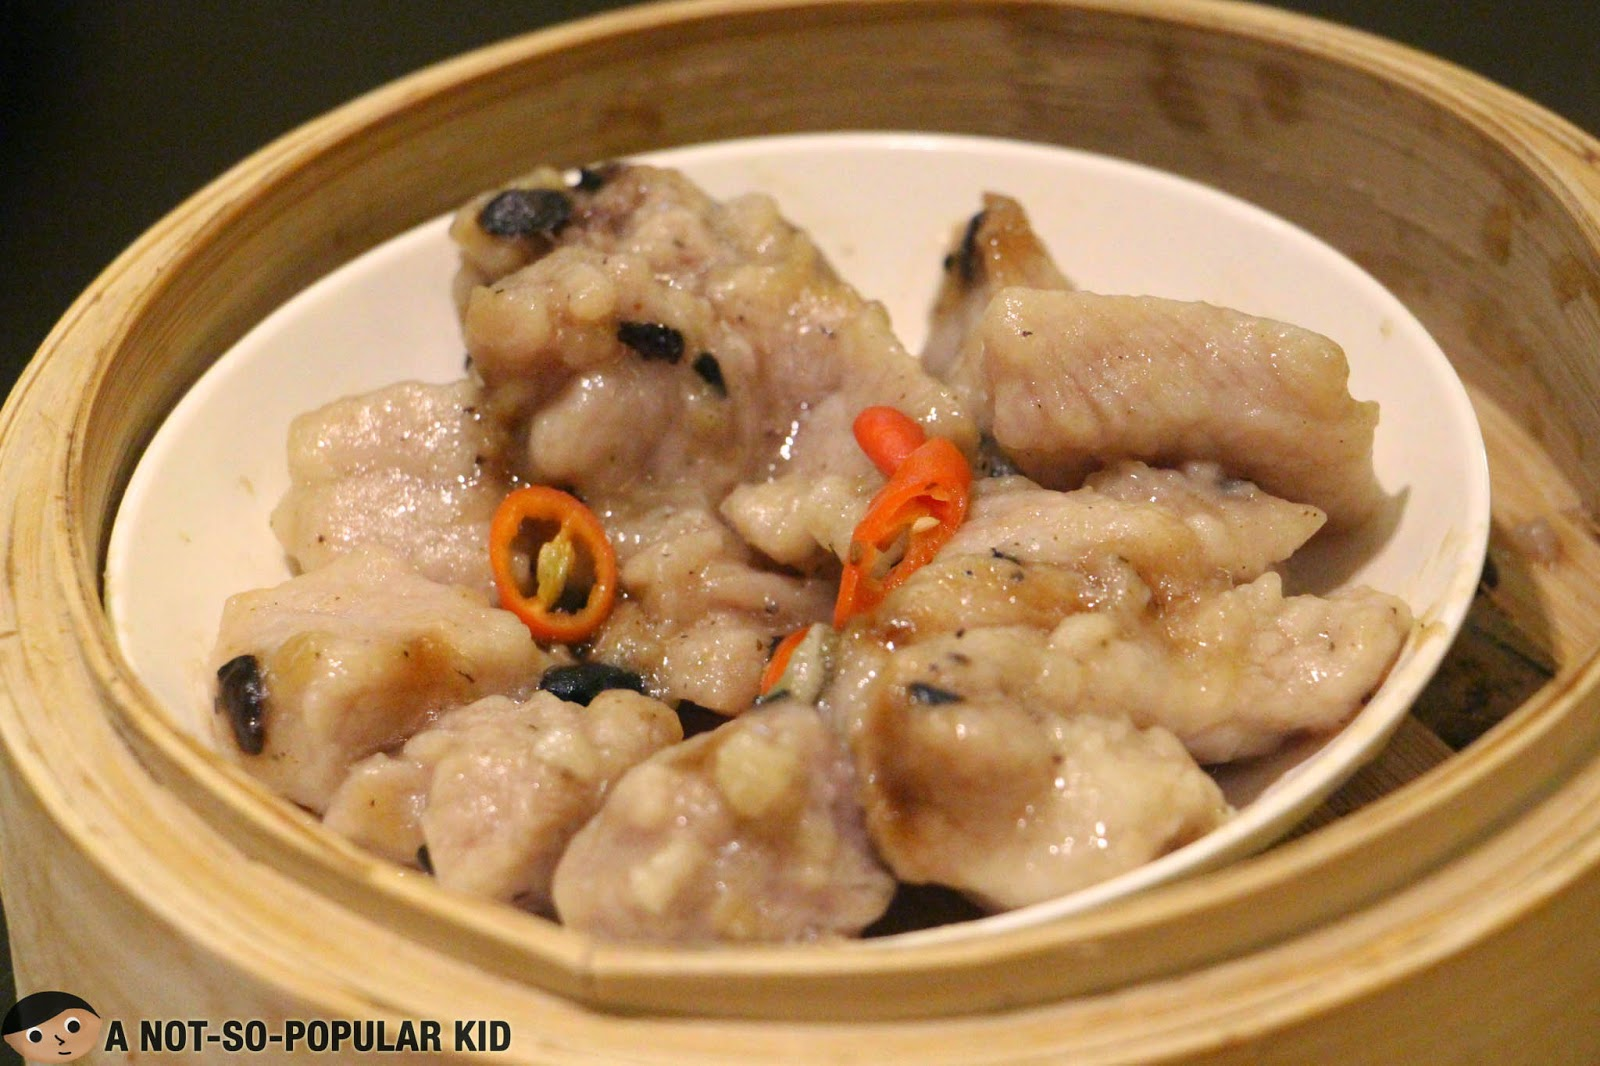 The Pork Rib with Black Bean Sauce of Tim Ho Wan